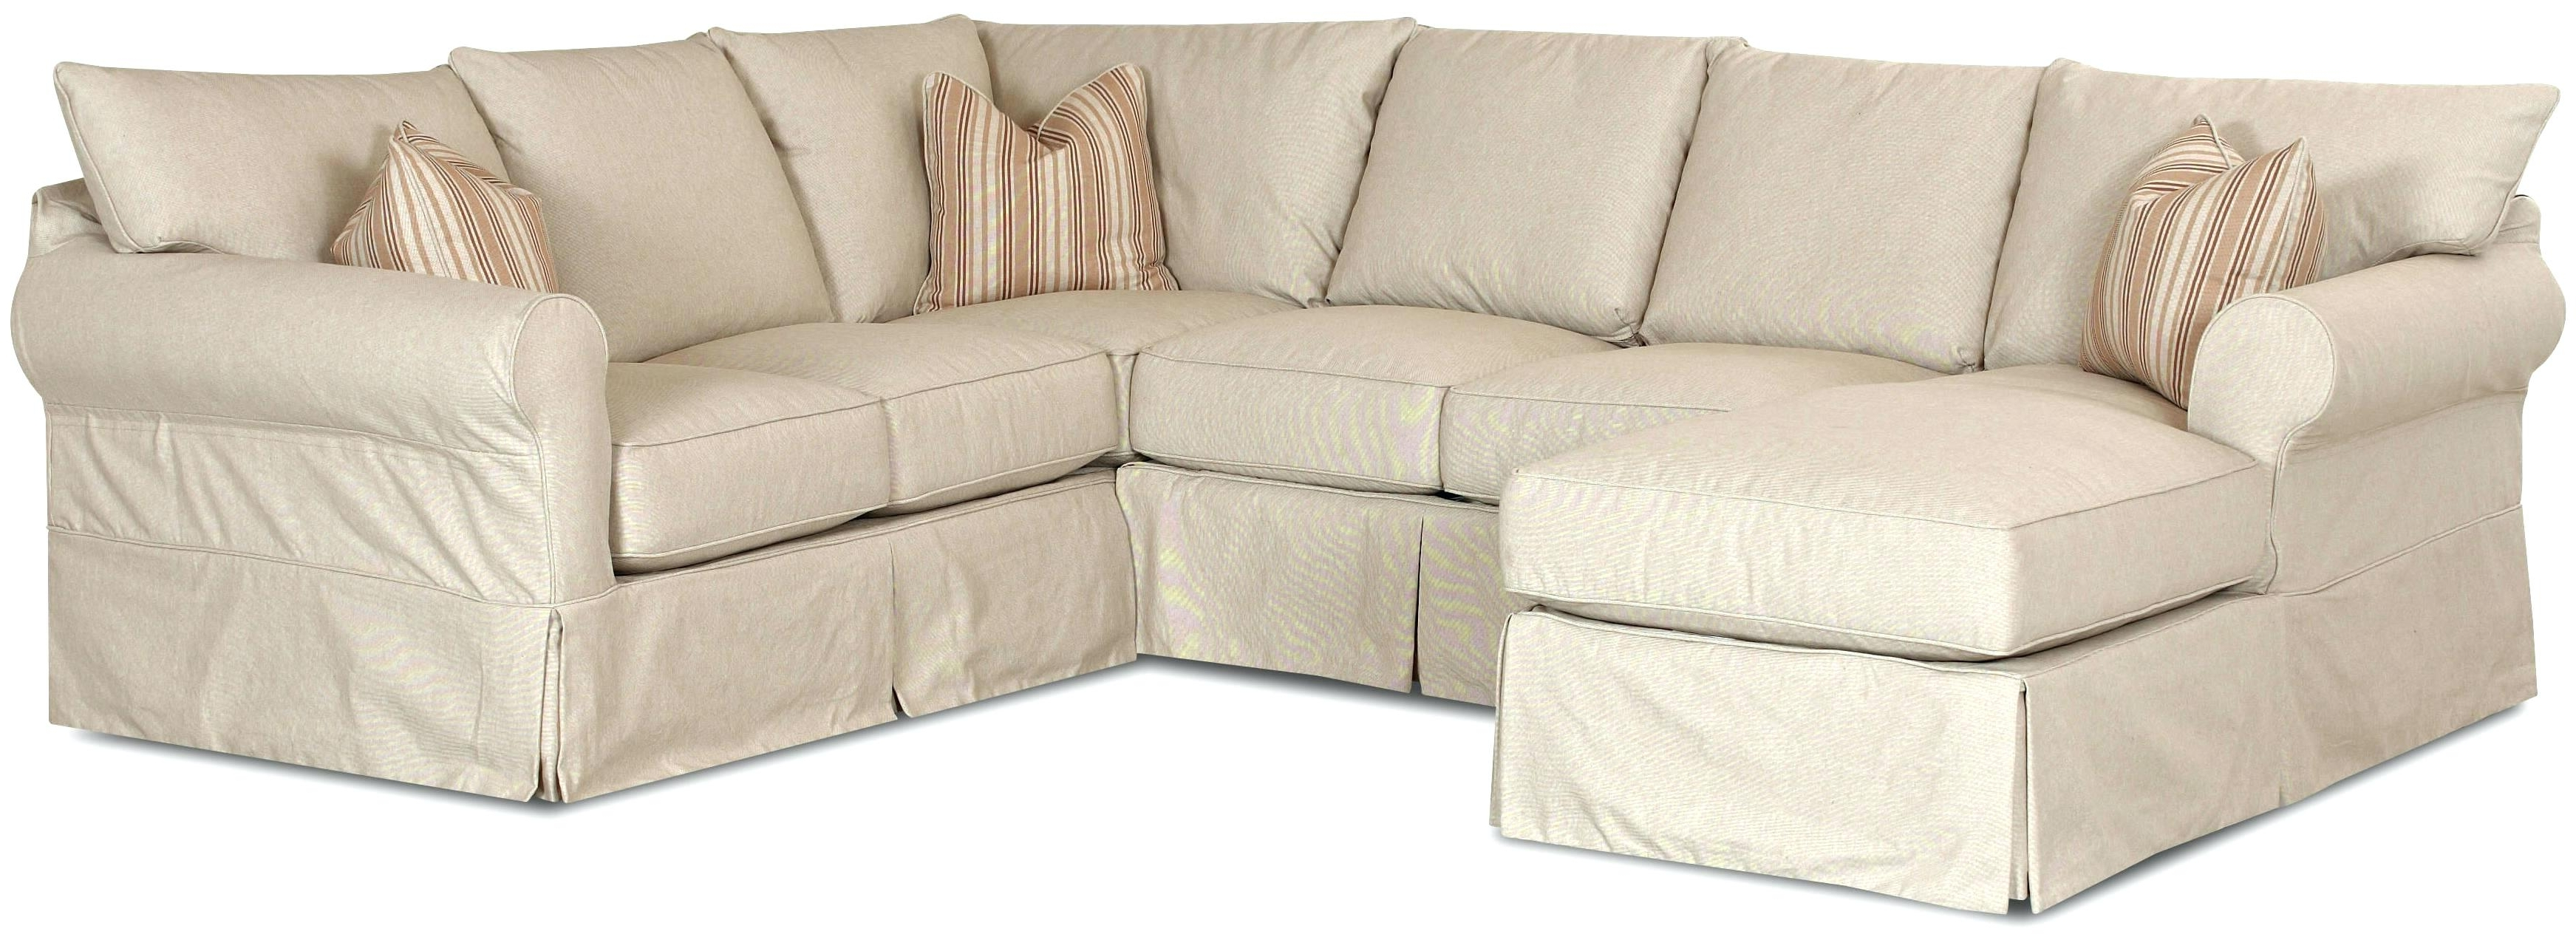 Made In North Carolina Sectional Sofas With Best And Newest Slipcovers: Slipcover Sofas North Carolina (View 8 of 20)